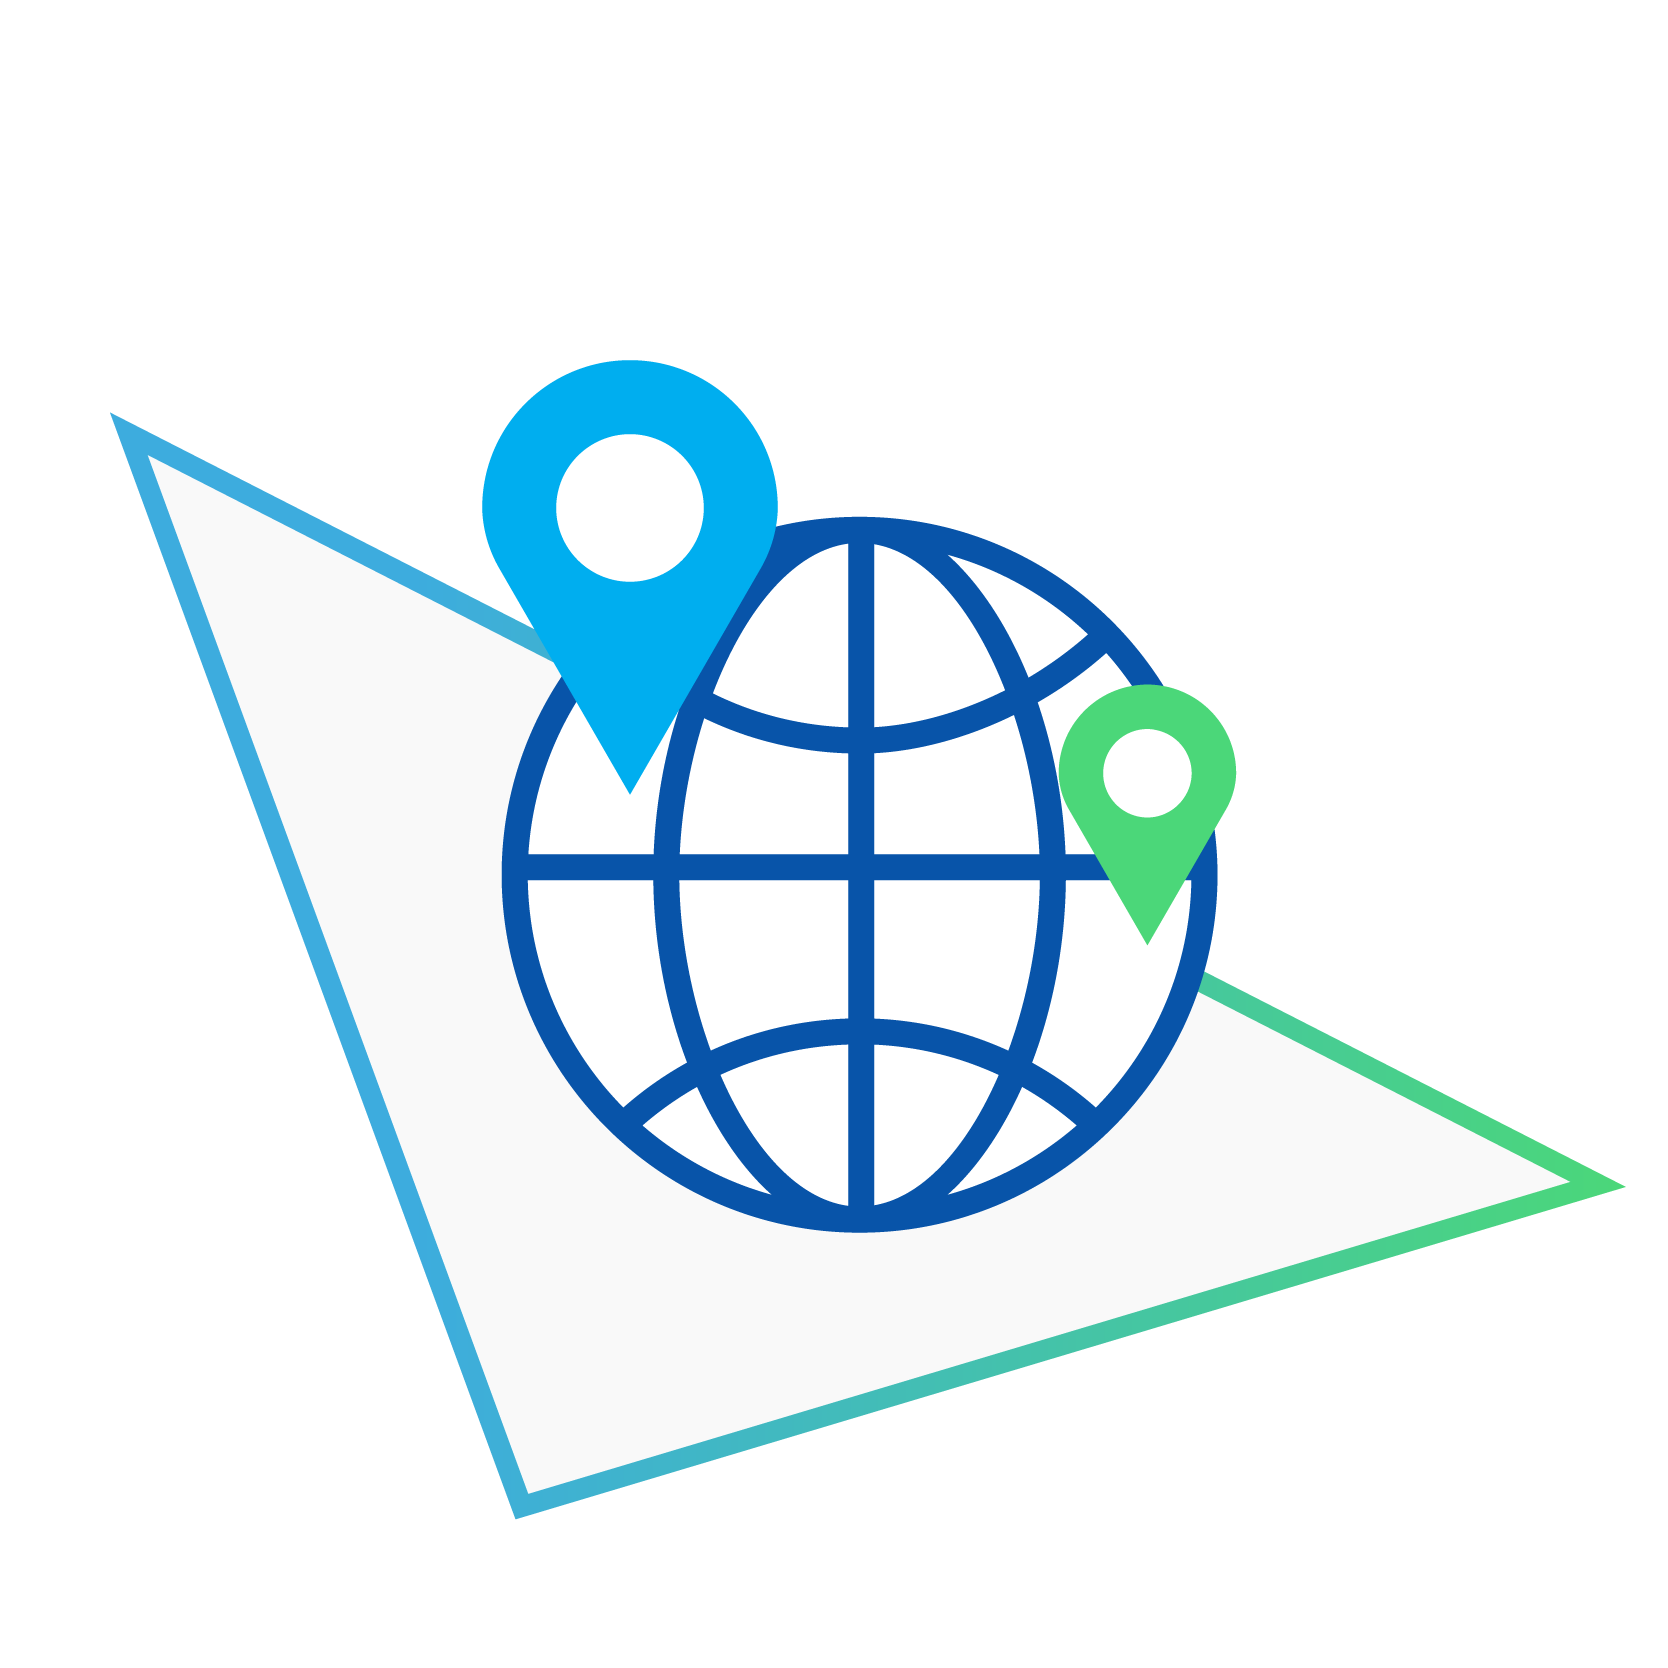 /images/default-source/icons/png/axis_art_icon-redesign_icons_v3_globe.png?sfvrsn=20360c7d_2